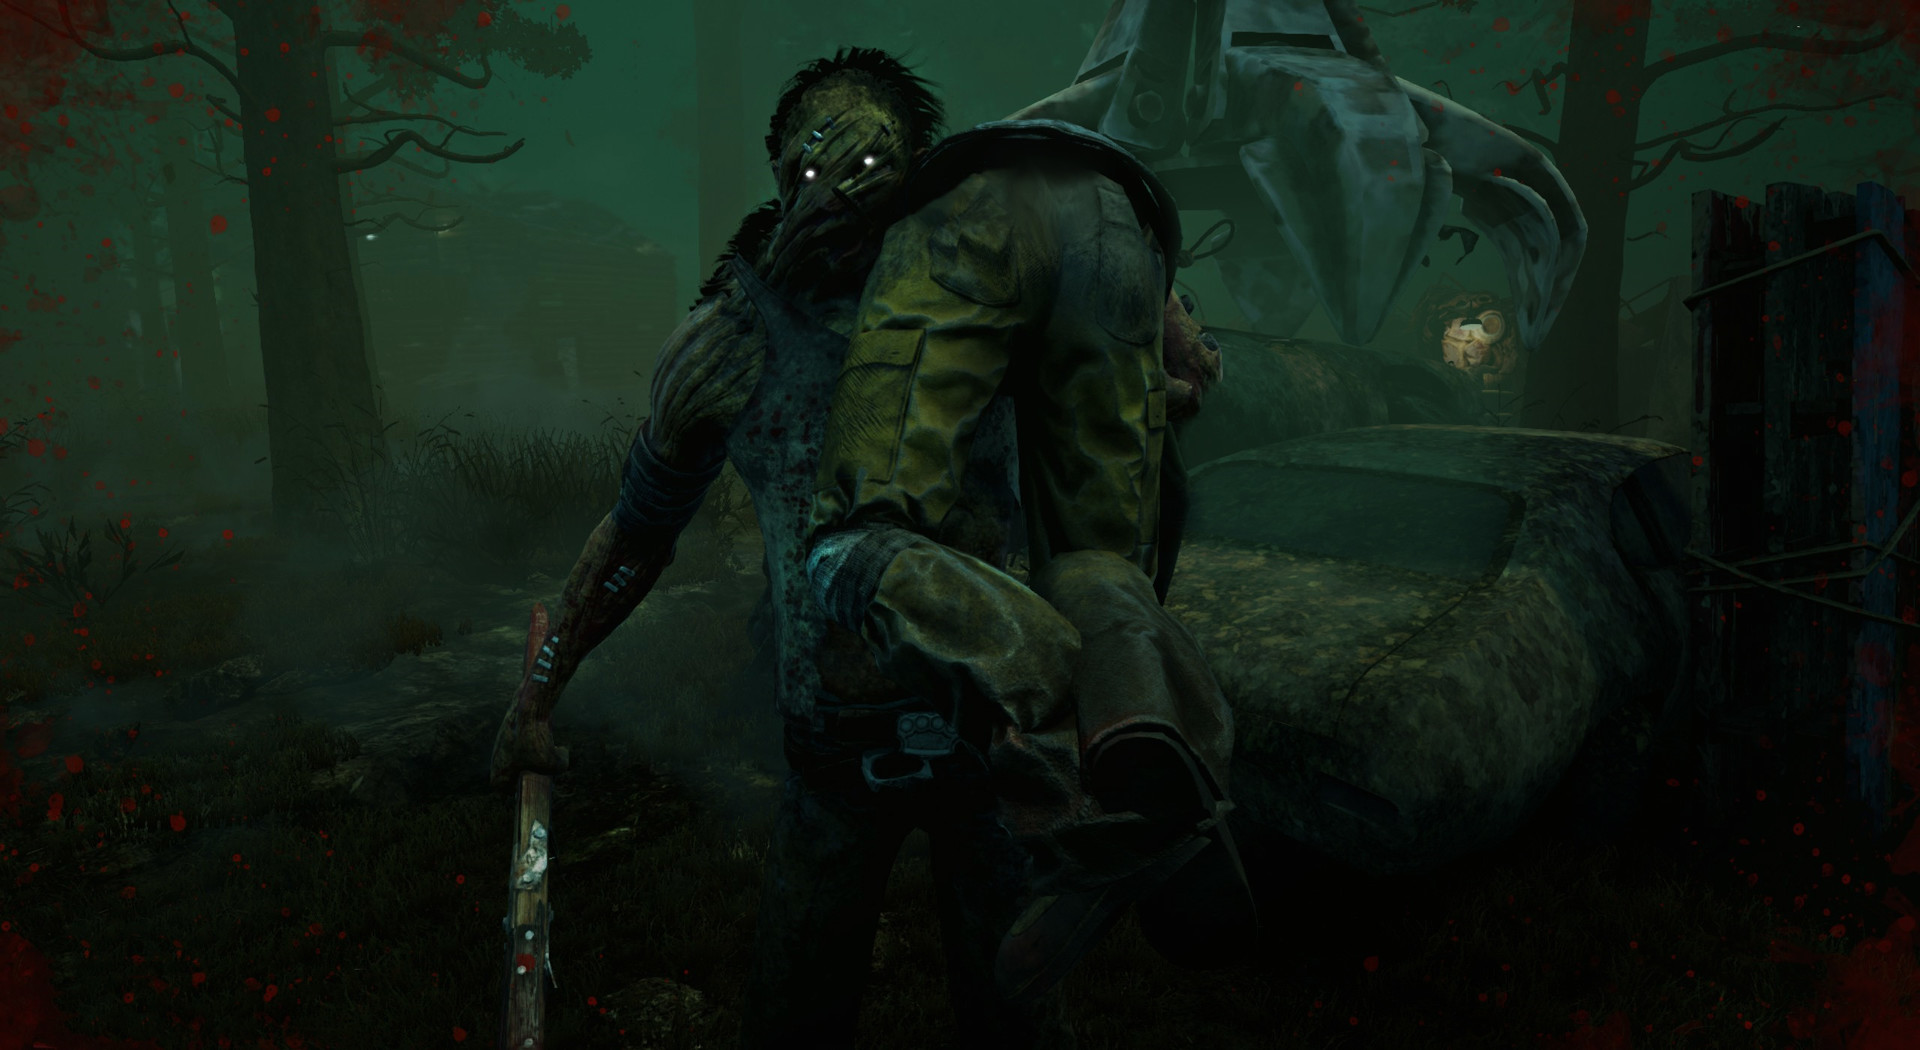 http://oceanofgames.com/wp-content/uploads/2016/06/Dead-By-Daylight-Features.jpg